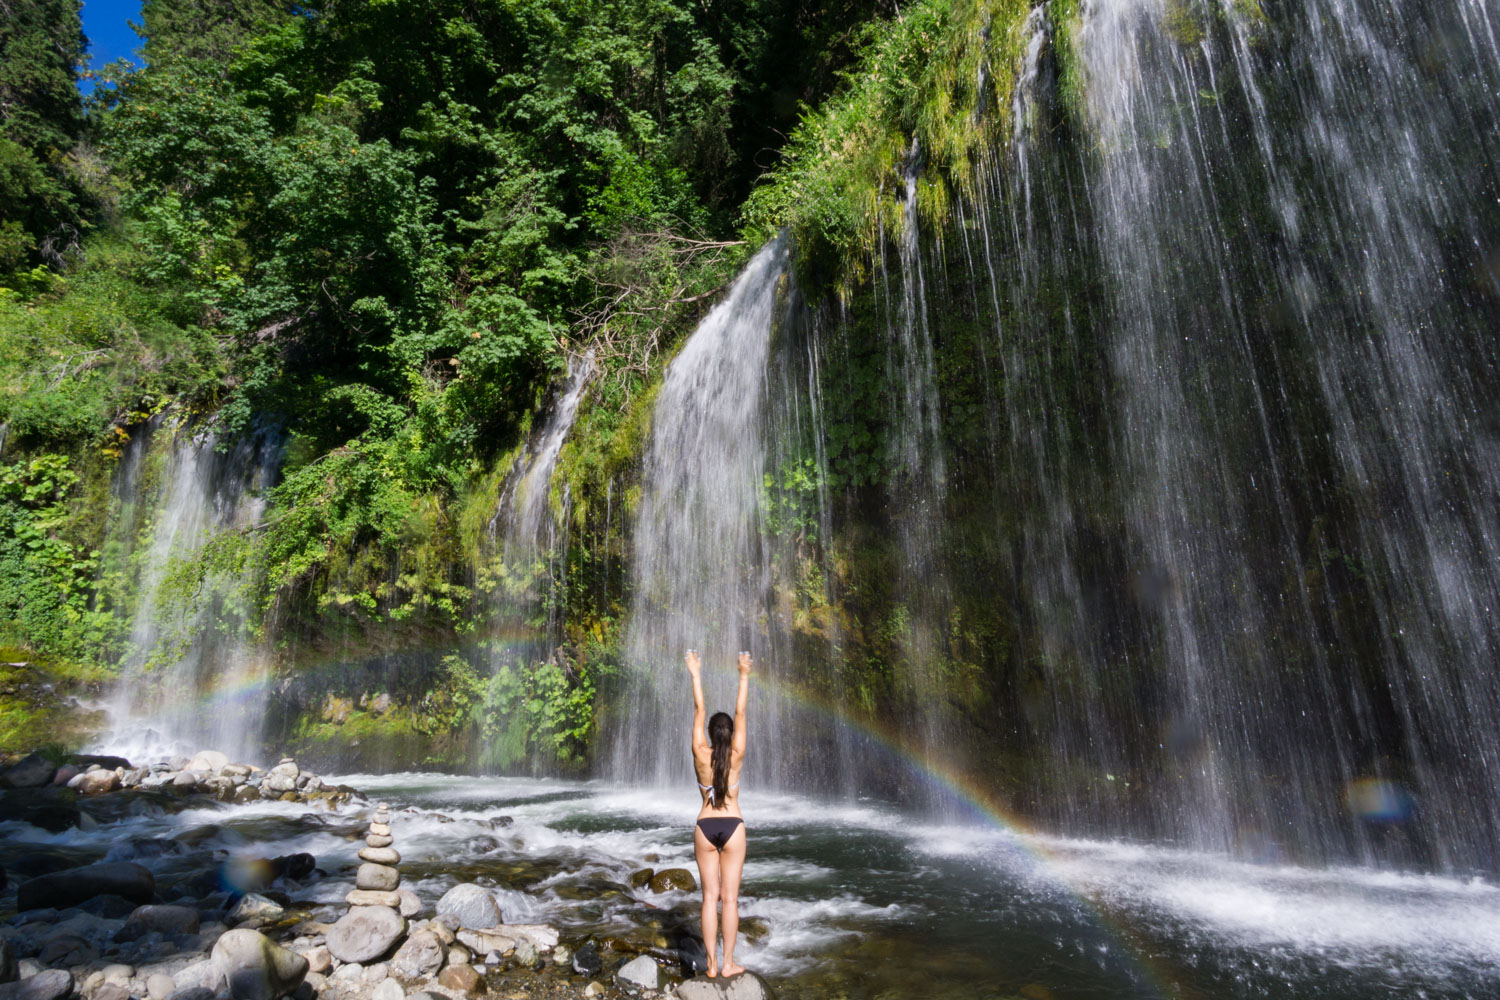 Mt Shasta Ca >> Mossbrae Falls Hike — Mt. Shasta, CA — Backcountrycow | Backpacking and Outdoor Travel